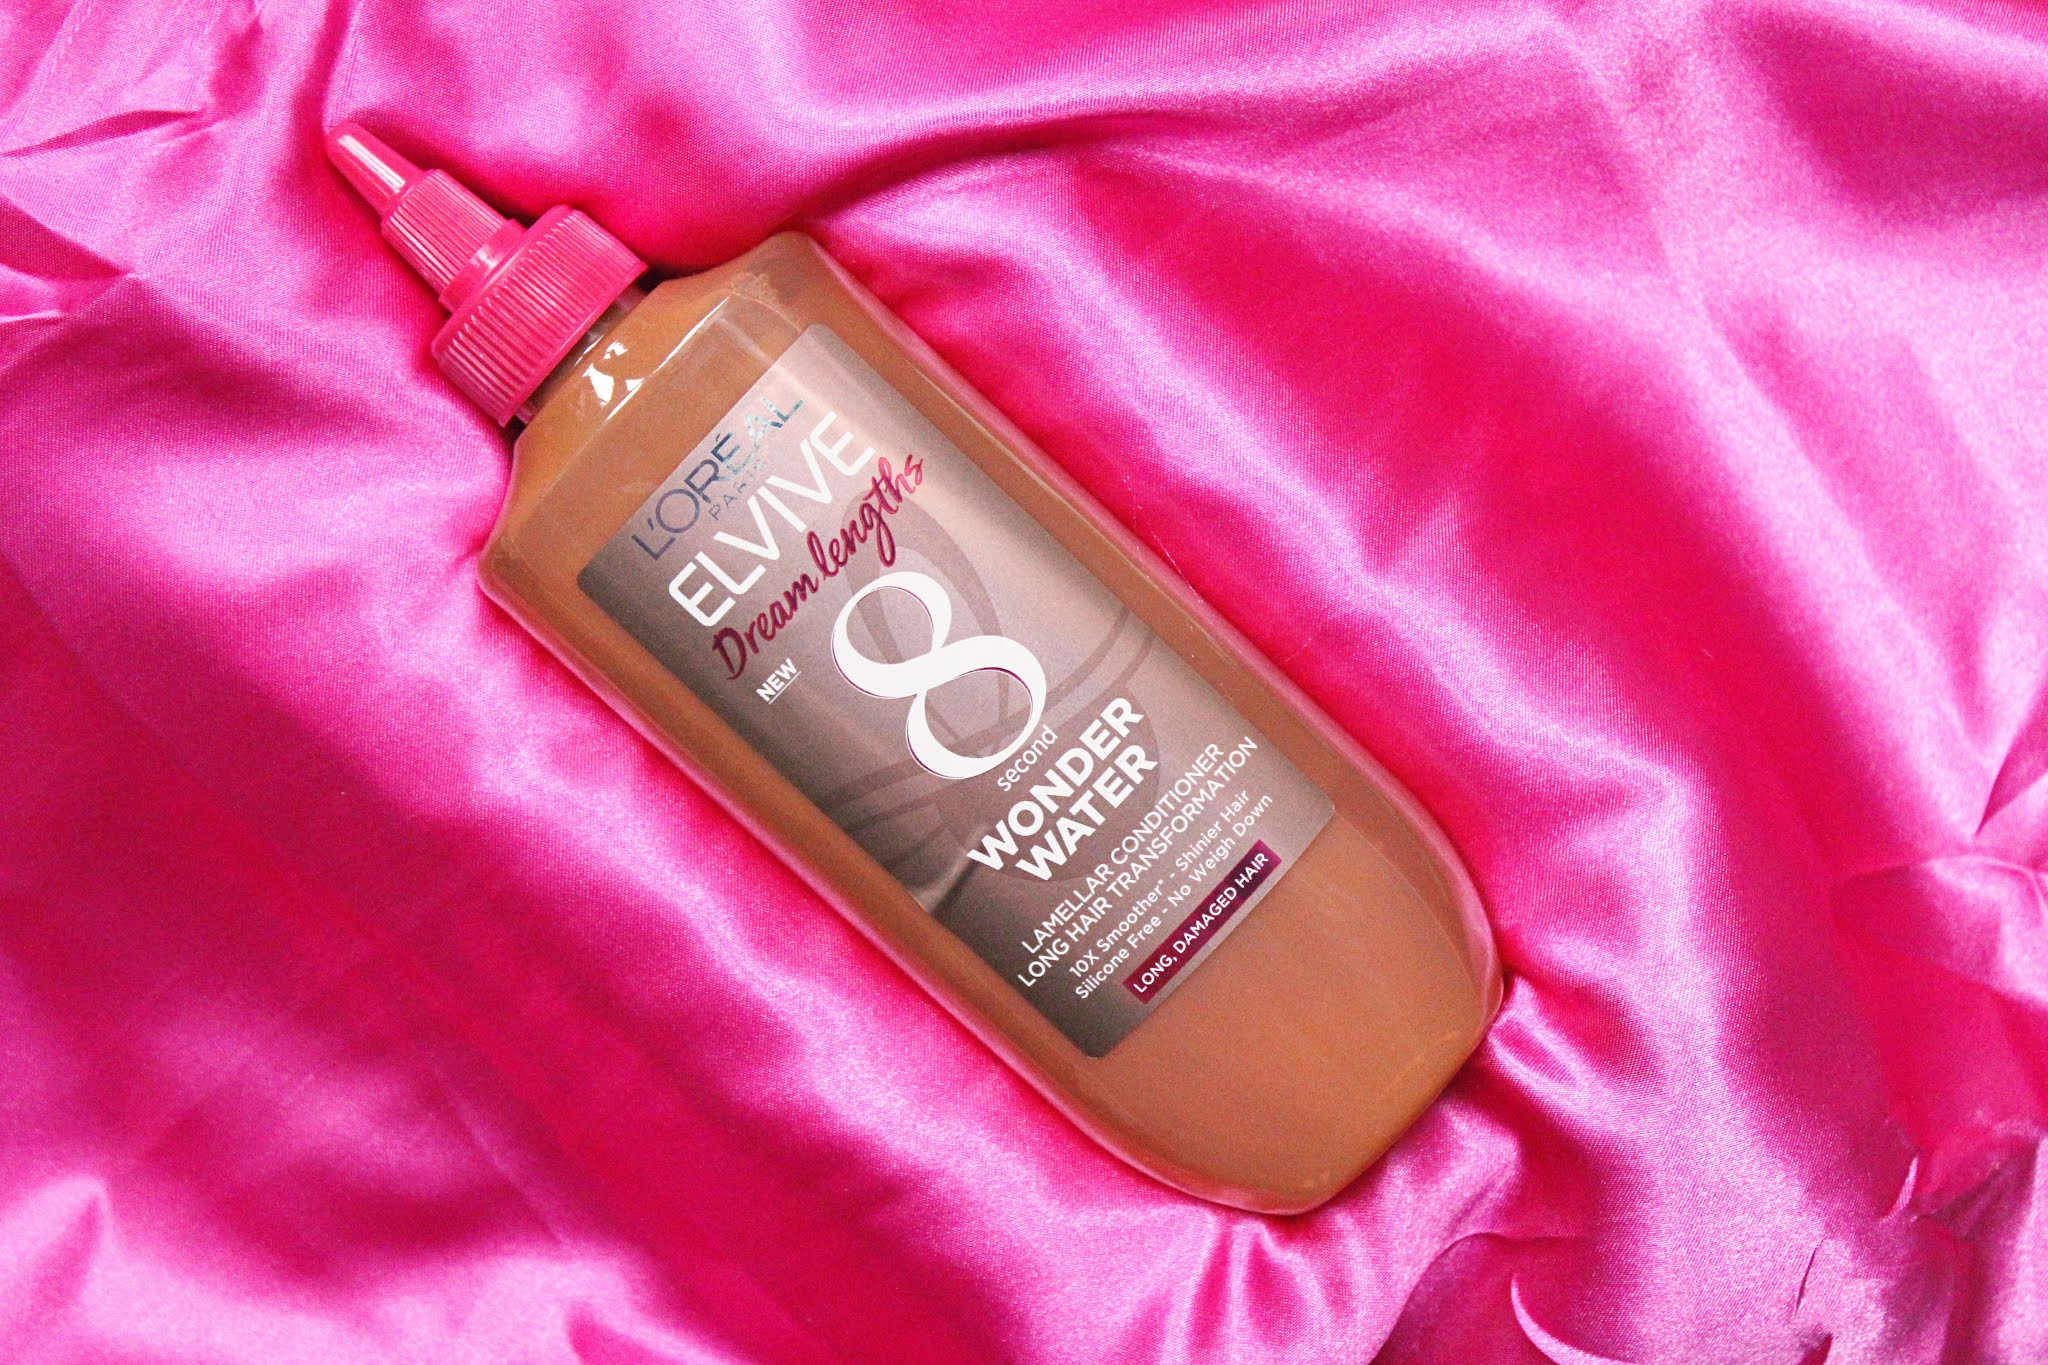 L'Oréal Elvive Dream Lengths Wonder Water 8 Second Hair Treatment Review